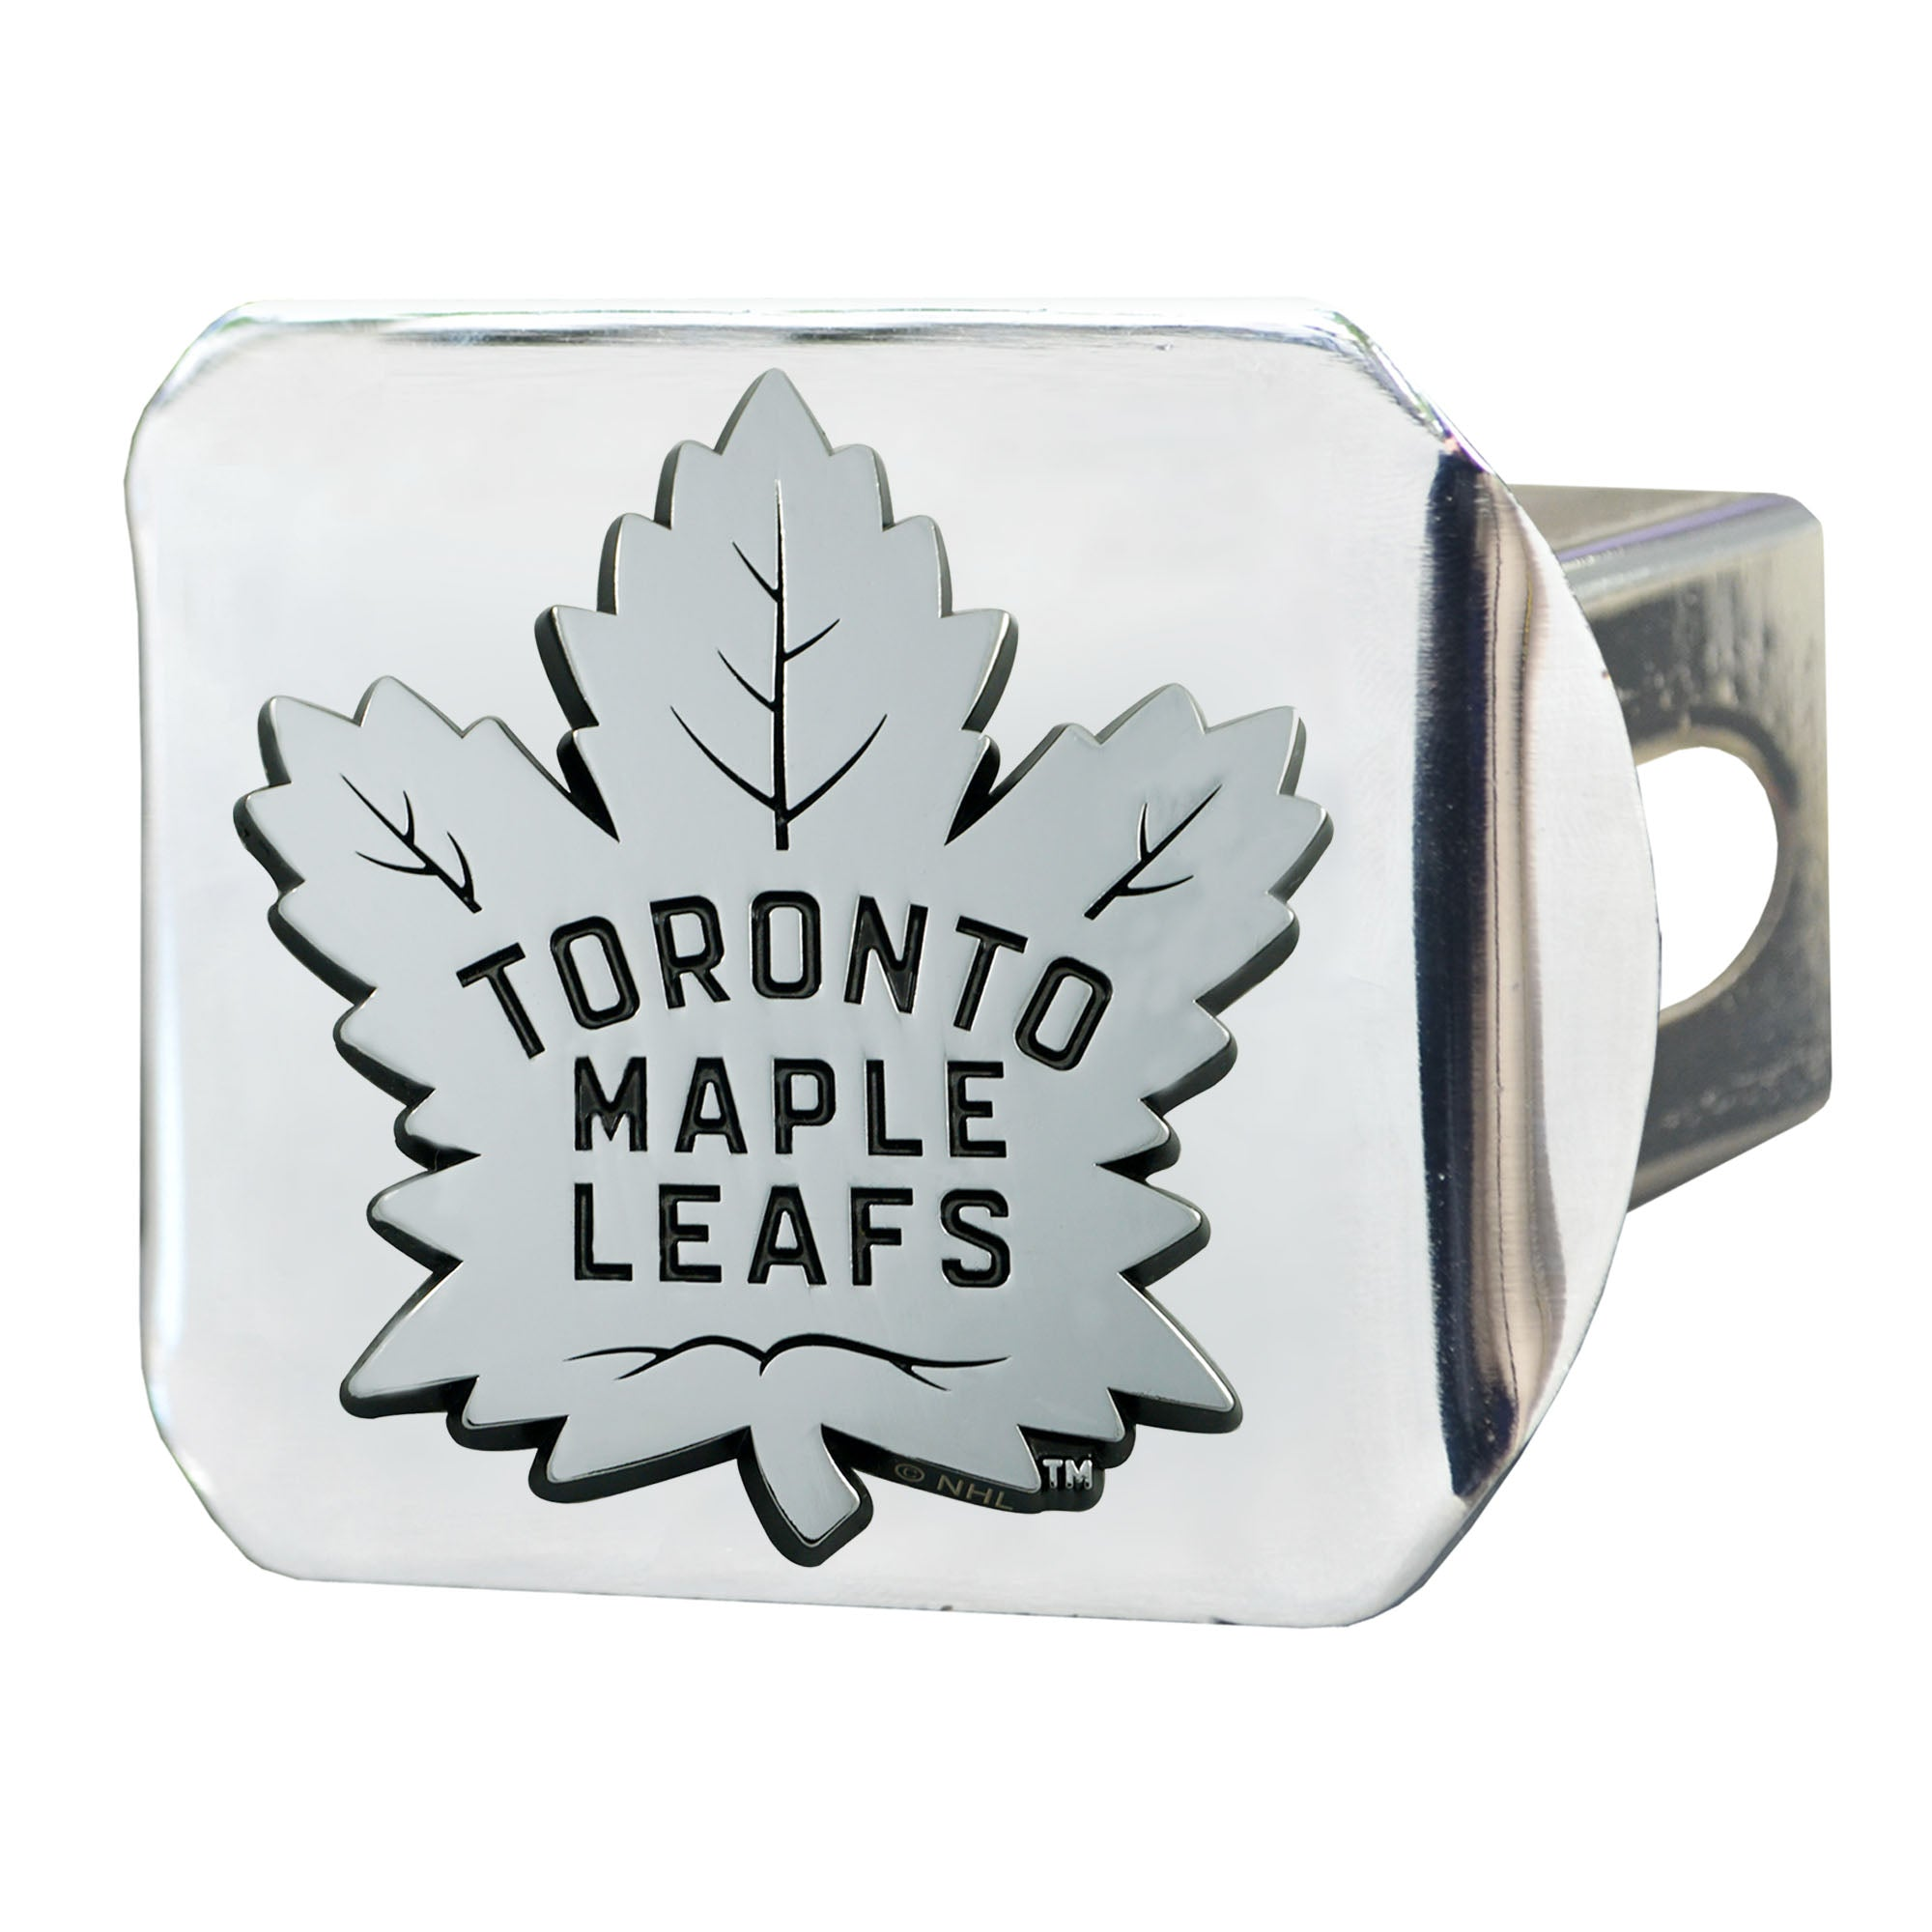 "NHL - Toronto Maple Leafs Hitch Cover - Chrome on Chrome 3.4""x4"""